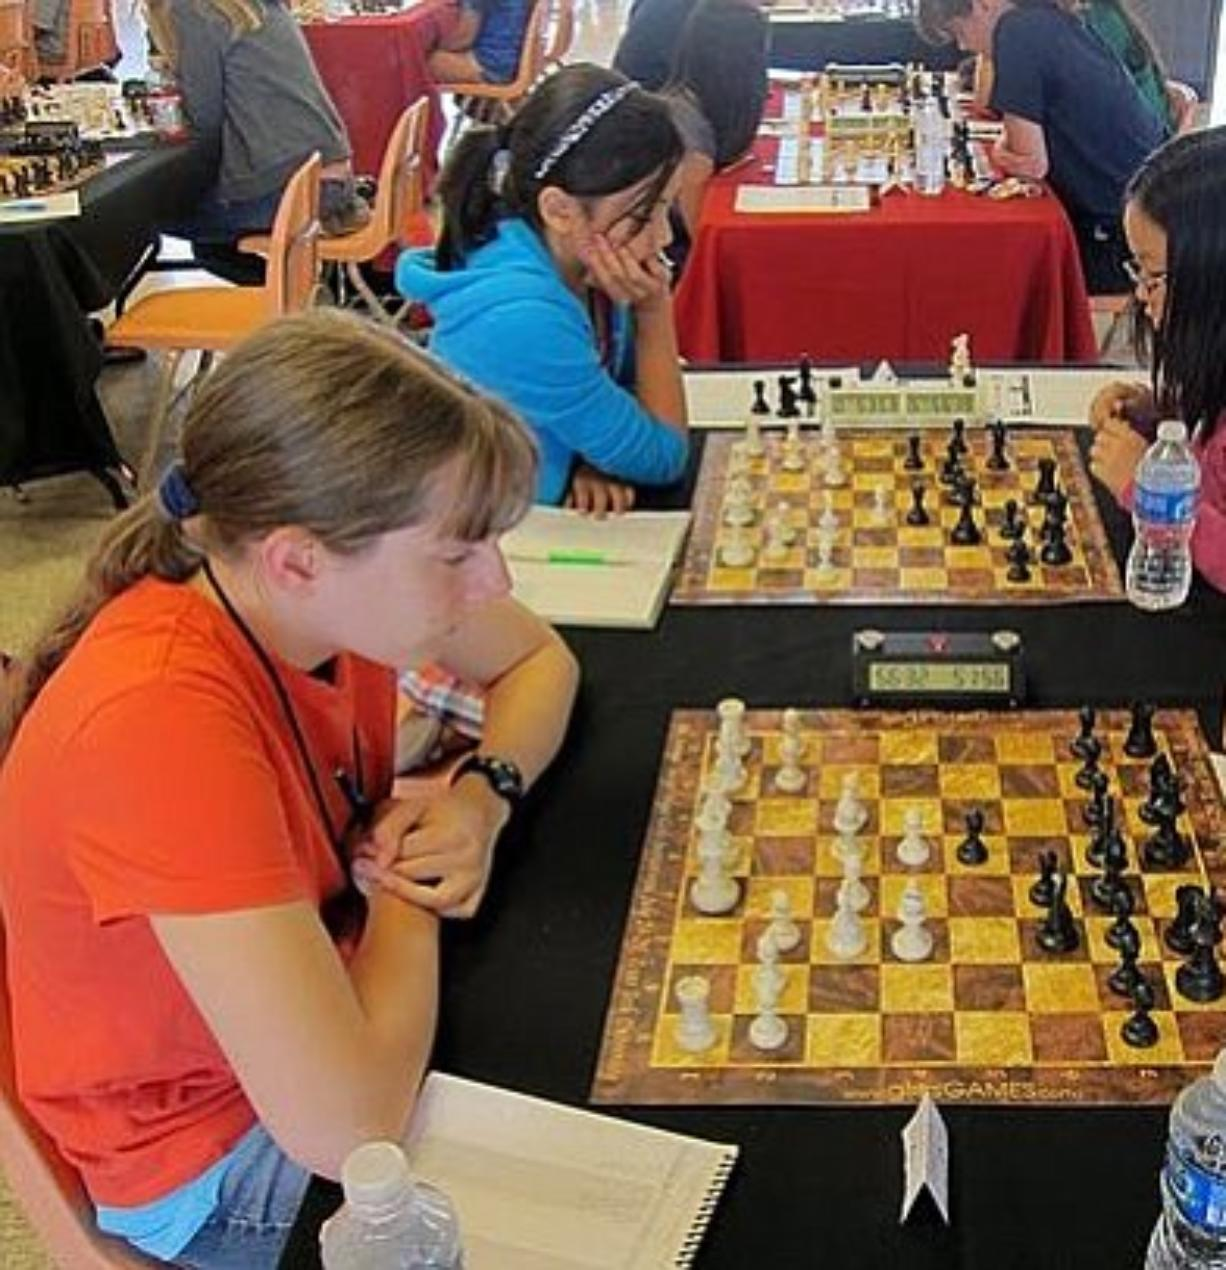 Heather Young, left, plays in the 2011 Susan Polgar International Championship, where she placed 18th.